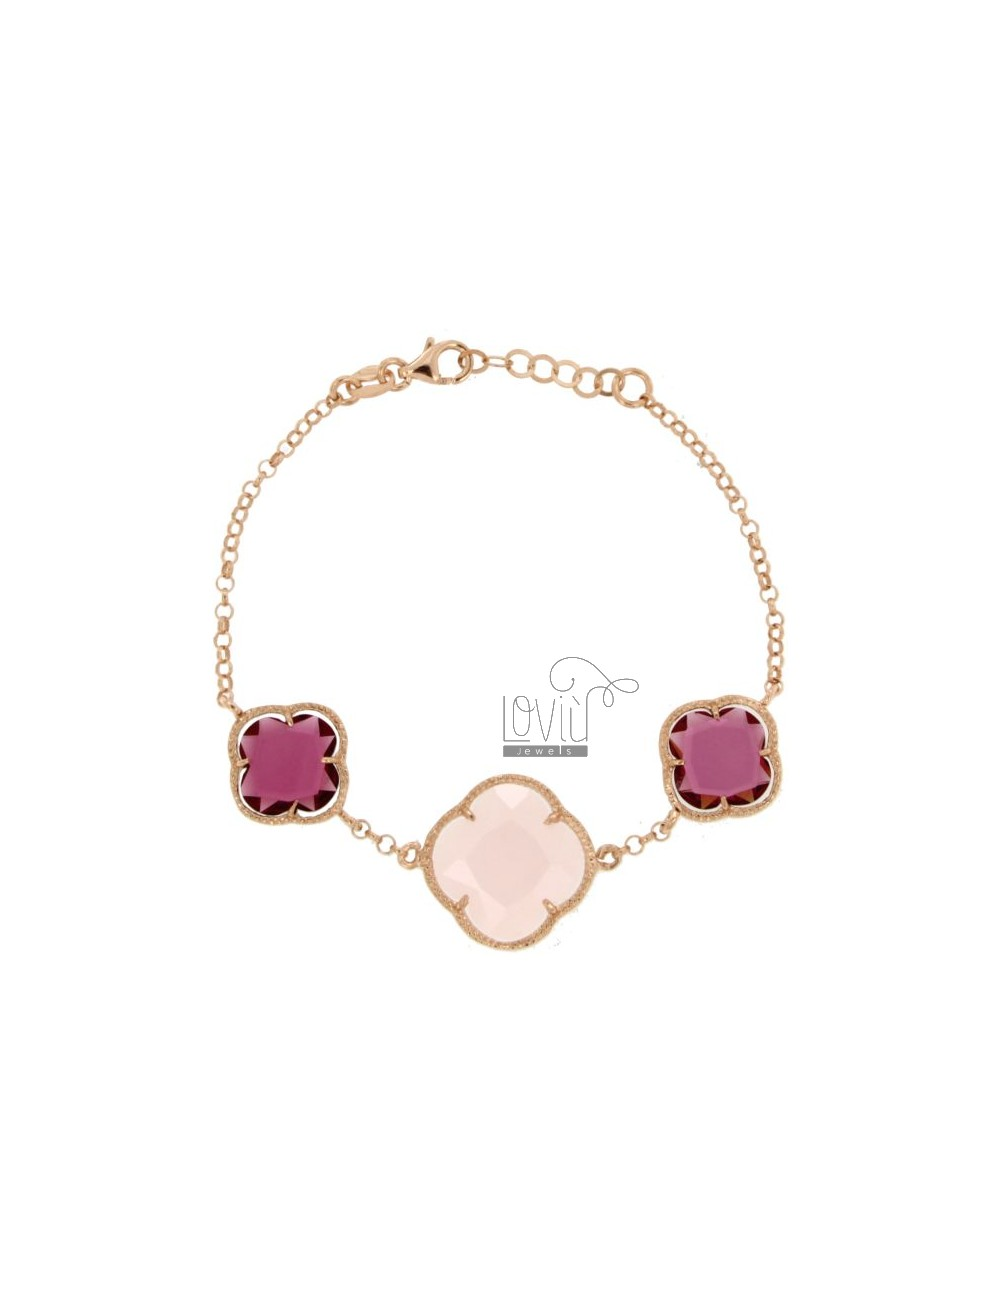 BRACELET WITH ROLO 'CHAIN AND FLOWERS IN PINK AND RED FUCHSIA HYDROTHERMAL STONES COLOR 16-11-16 PEARL IN ROSE GOLD PLATED AG TI